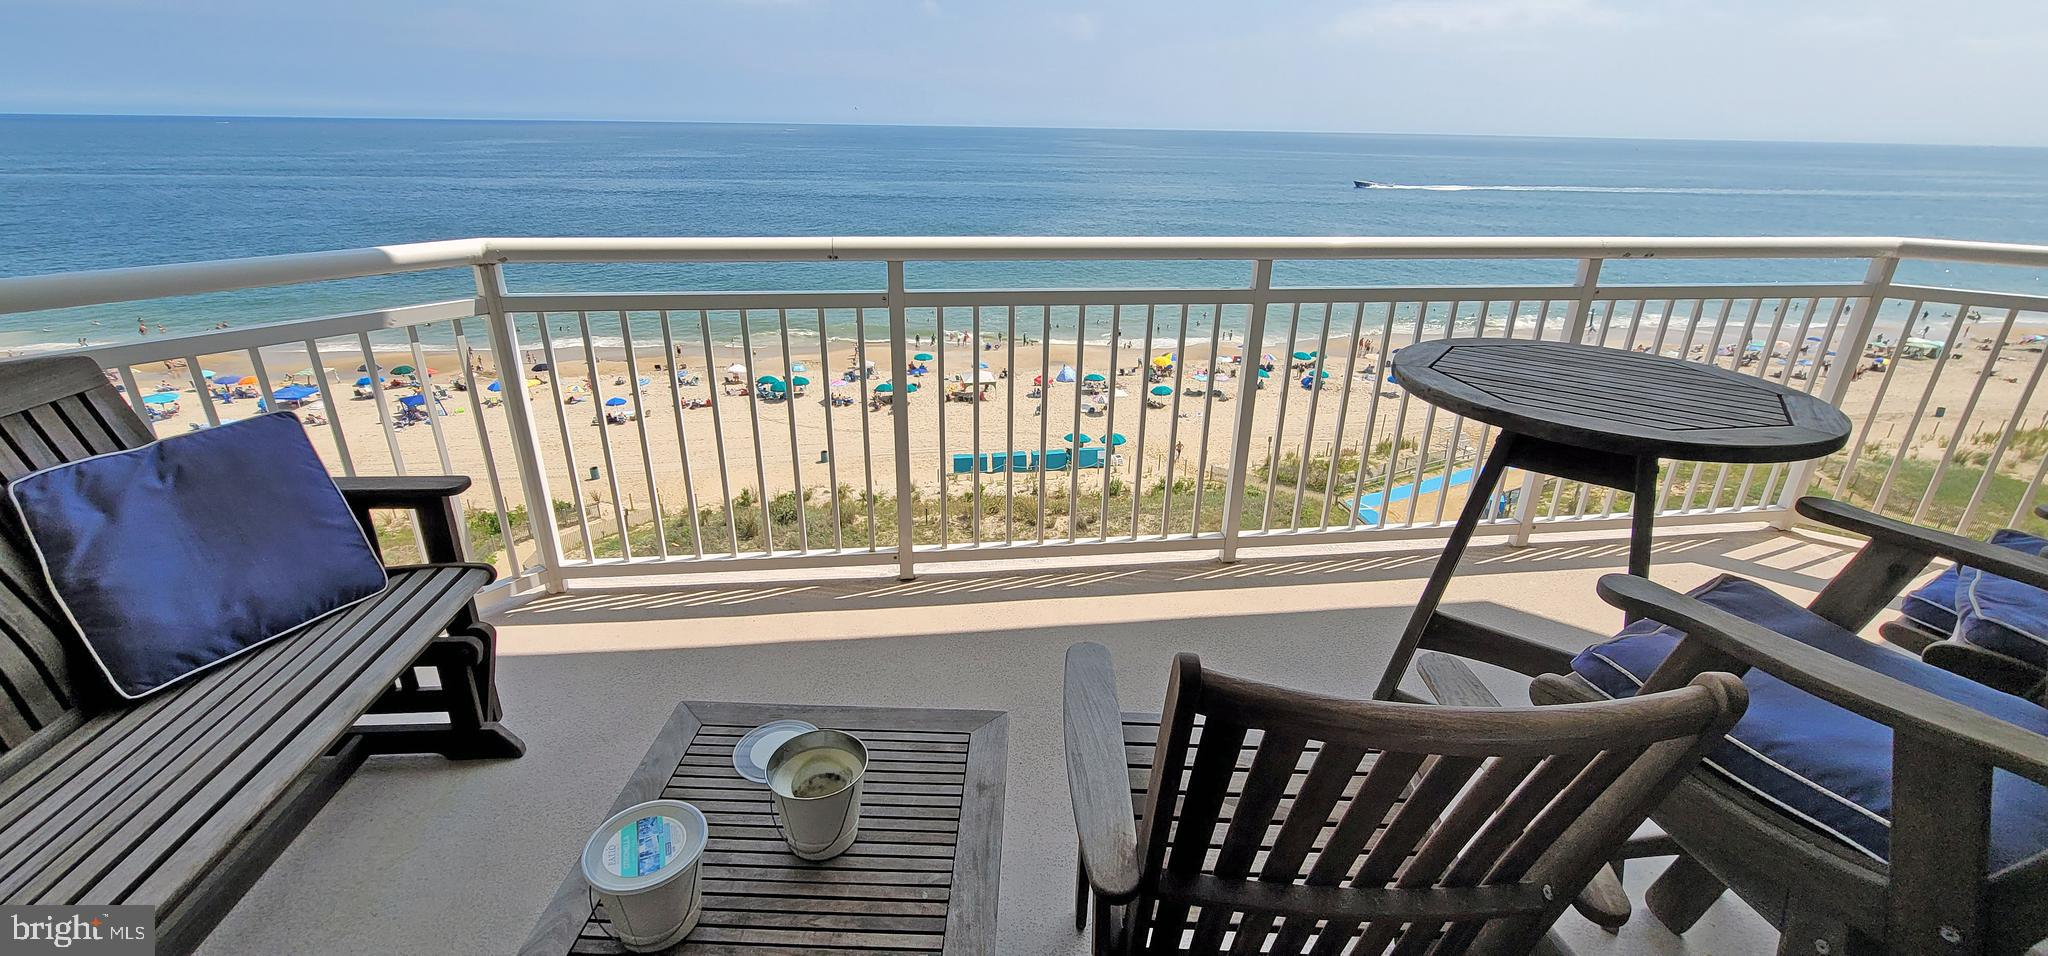 Luxury awaits you with this Direct 3-bedroom 3-bathroom Condo in the Gateway Grand.  A private location at the end of the hall on the south side of the building makes this one a must see.  Once inside your surround by the finer things in life featuring designer furnishings, Tile floors, granite counters, wine cooler, stone backsplash, electronic hunter blinds and condition beach storage #63.  Relax in the Oceanfront Master bedroom with amazing views from all sides.  The Gateway Grand offers on-site management, indoor and outdoor pools, fitness center, kids' playroom, conditioned beach storage, 3 owner's lounges, community patio, beach volleyball, secure parking garage, Electric car chargers and surfaced overflow parking lot.  If you are looking for a building that, has it all this one is for you.  Call for your private showing.